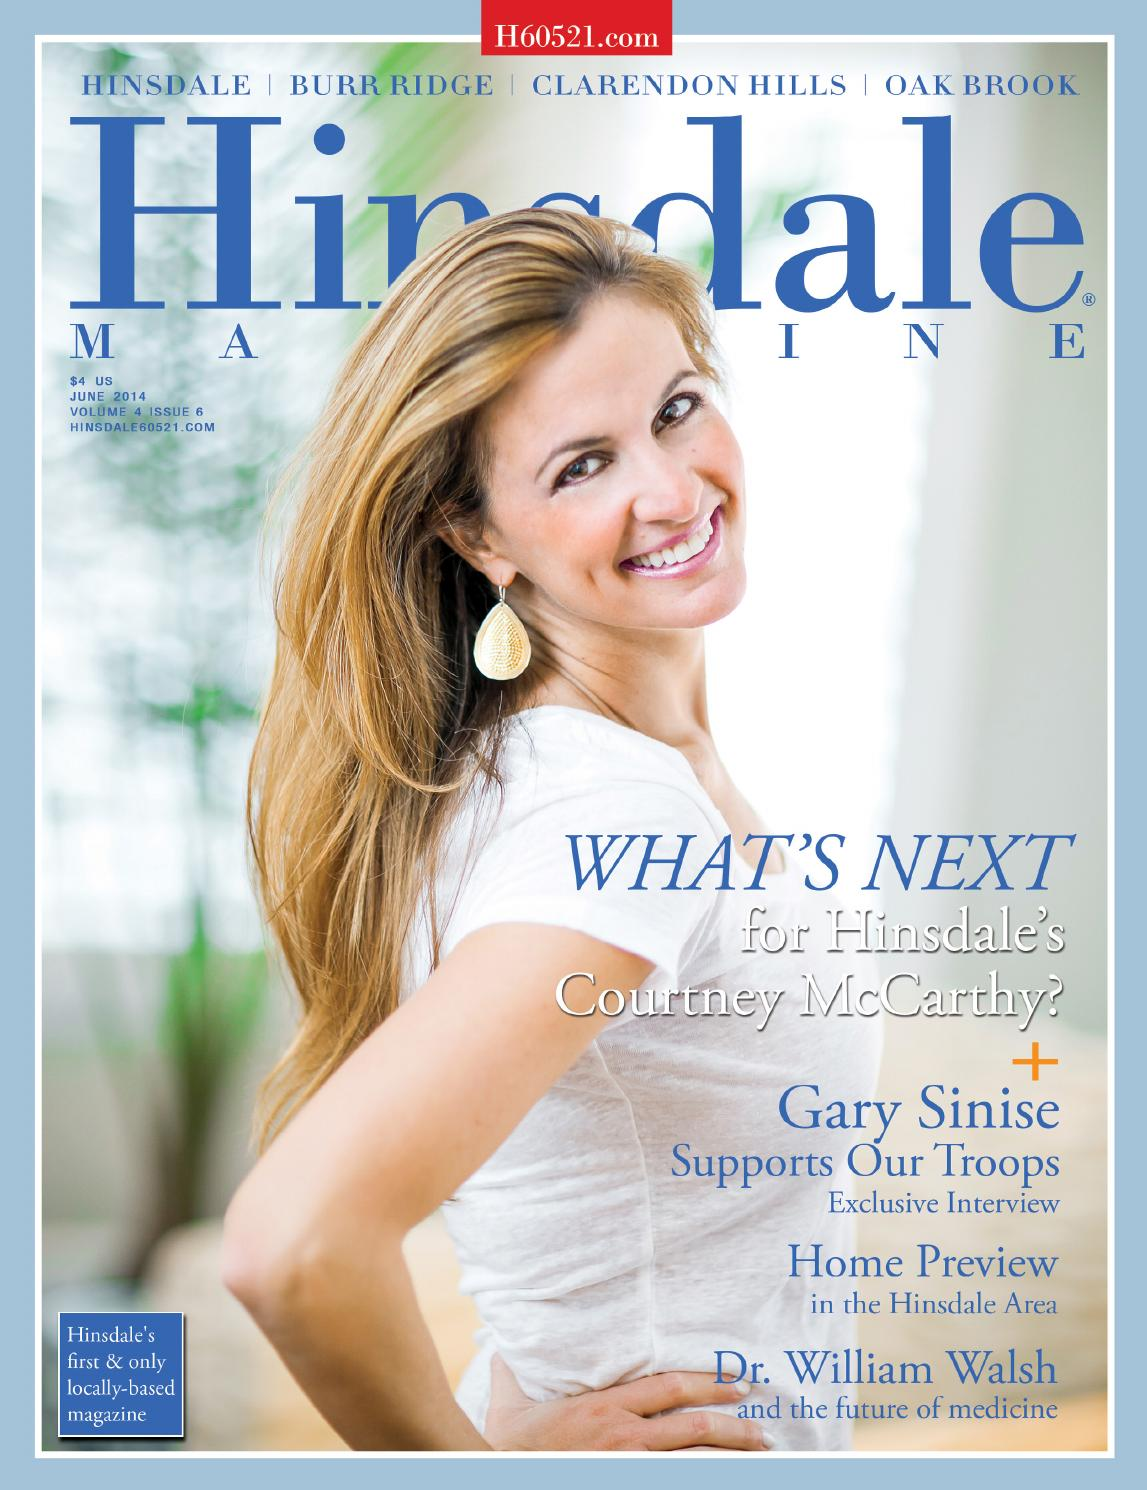 Hinsdale Magazine June 2014 By Www Hinsdale60521 Com Issuu